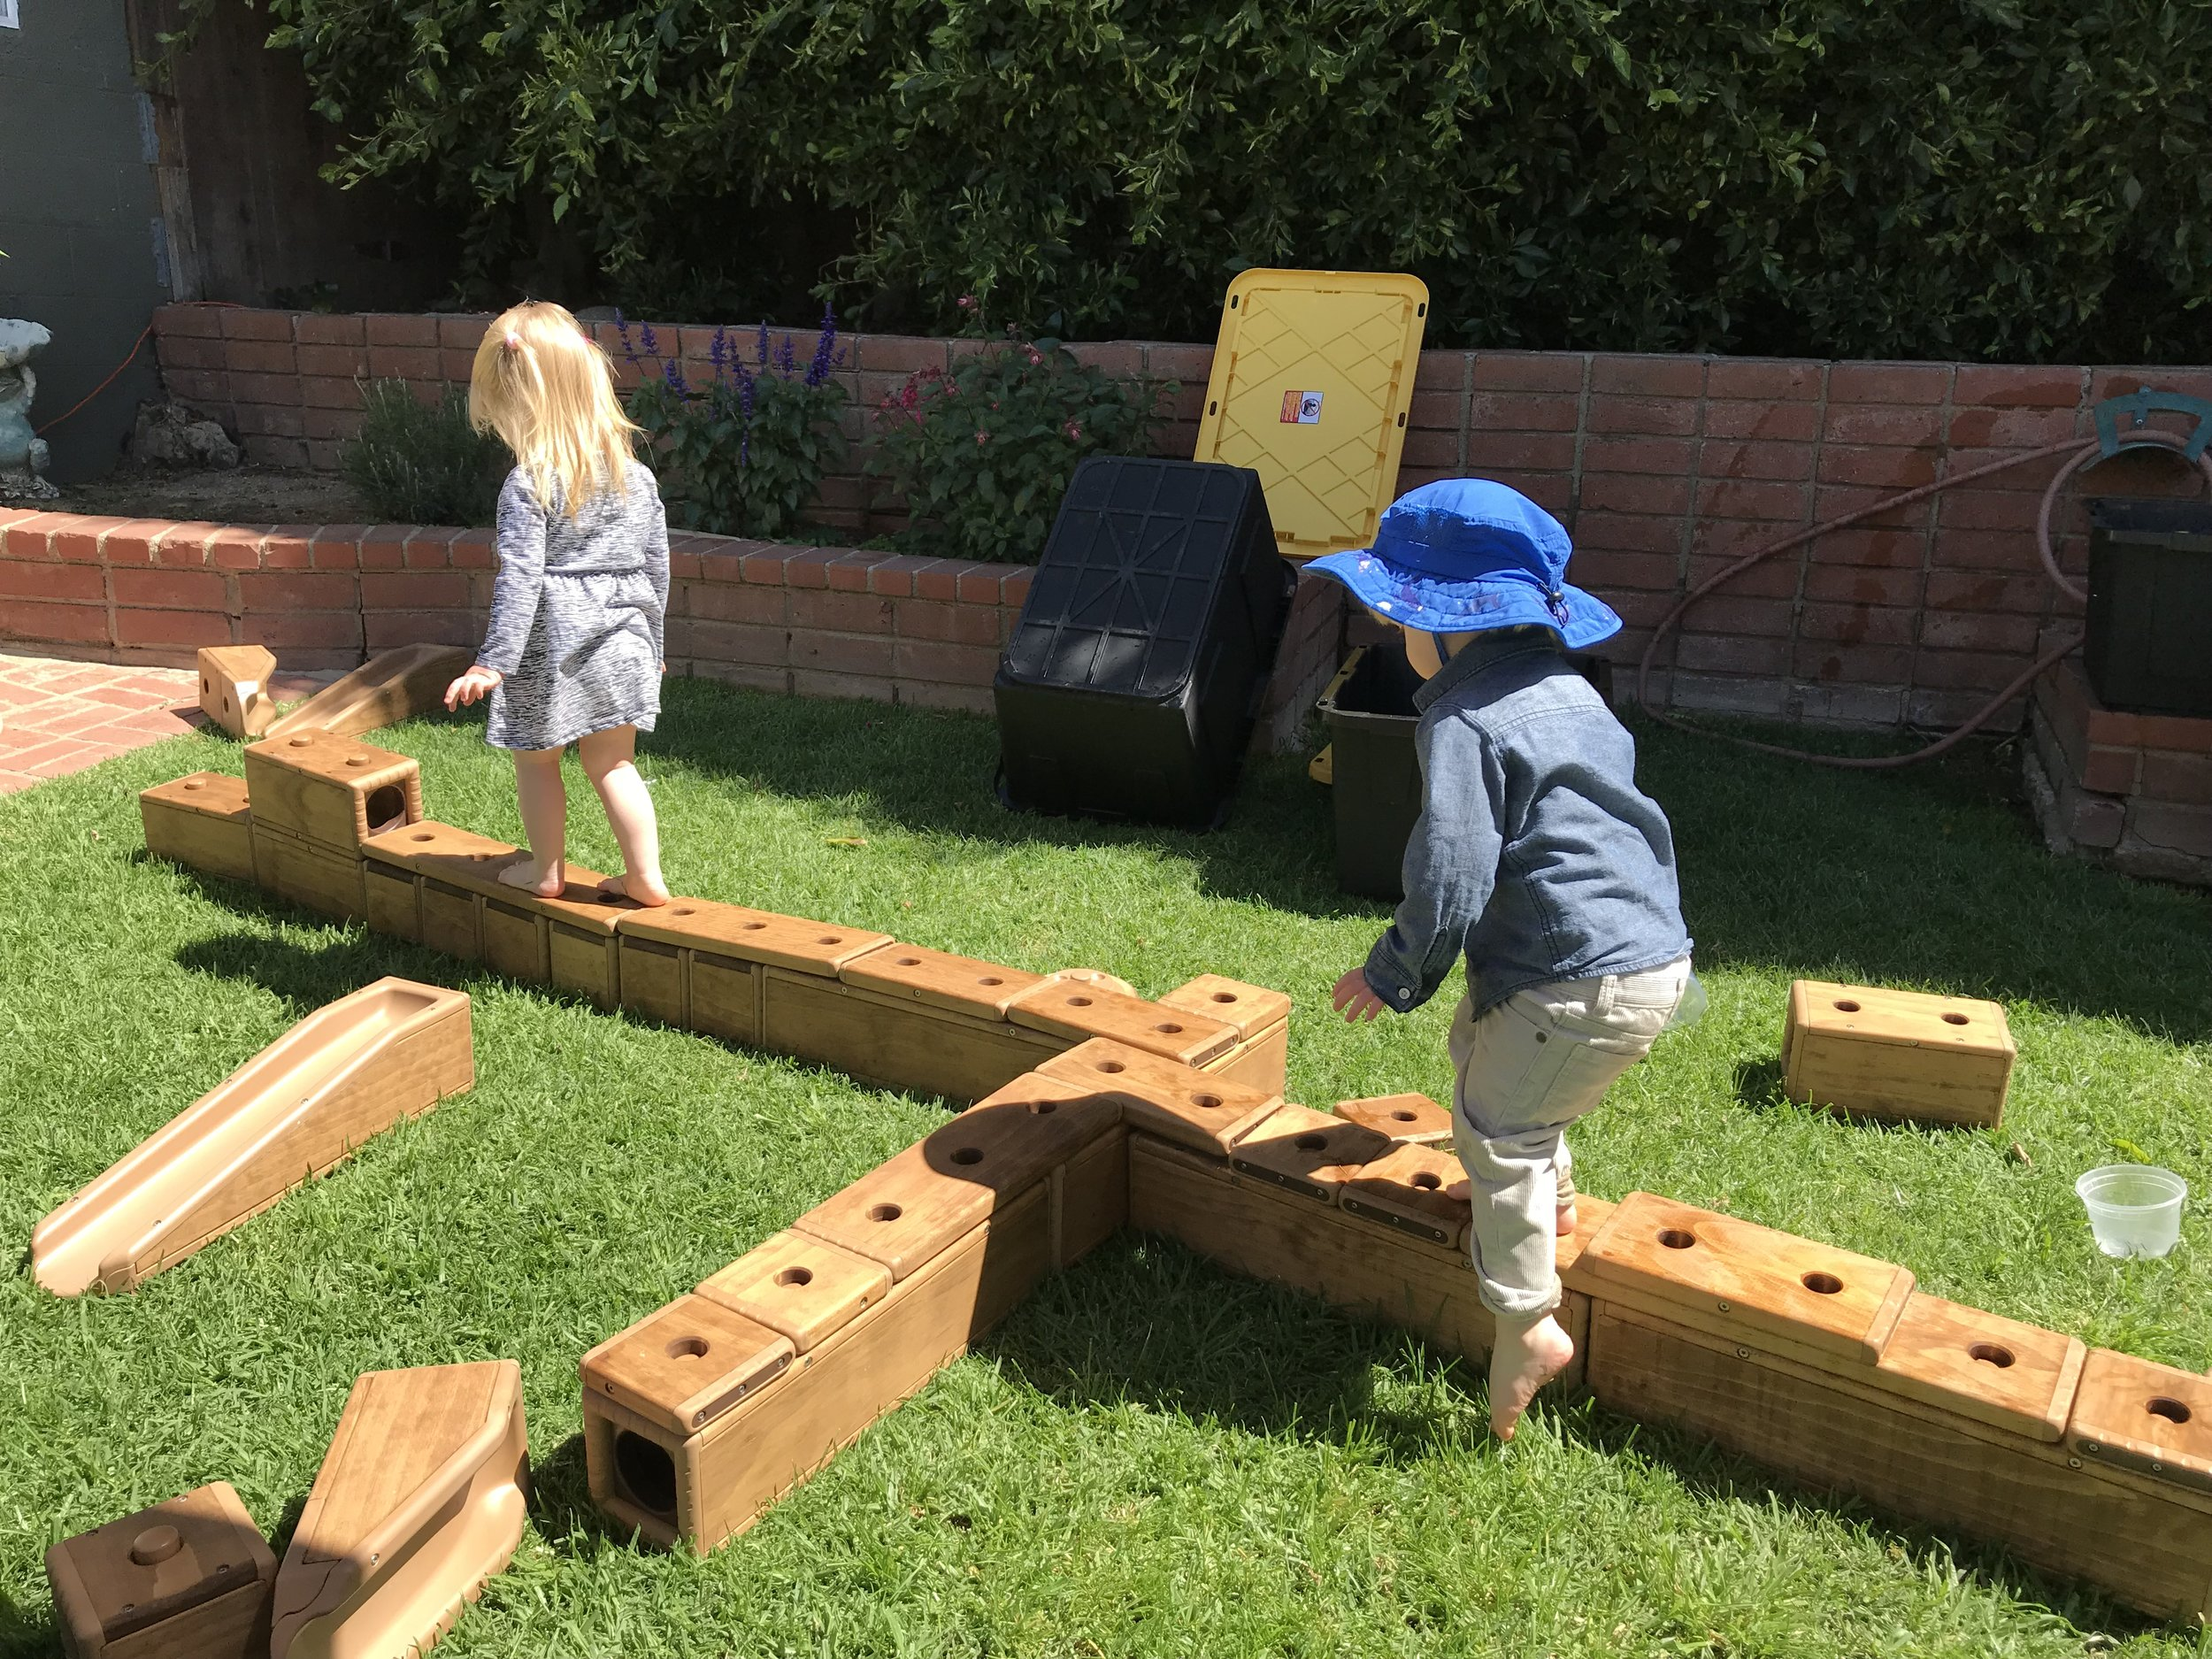 IMAGE OF THE CHILD - We view children as co-constructors of their own learning, capable of developing their own theories and contributing to the shared knowledge of a school community.